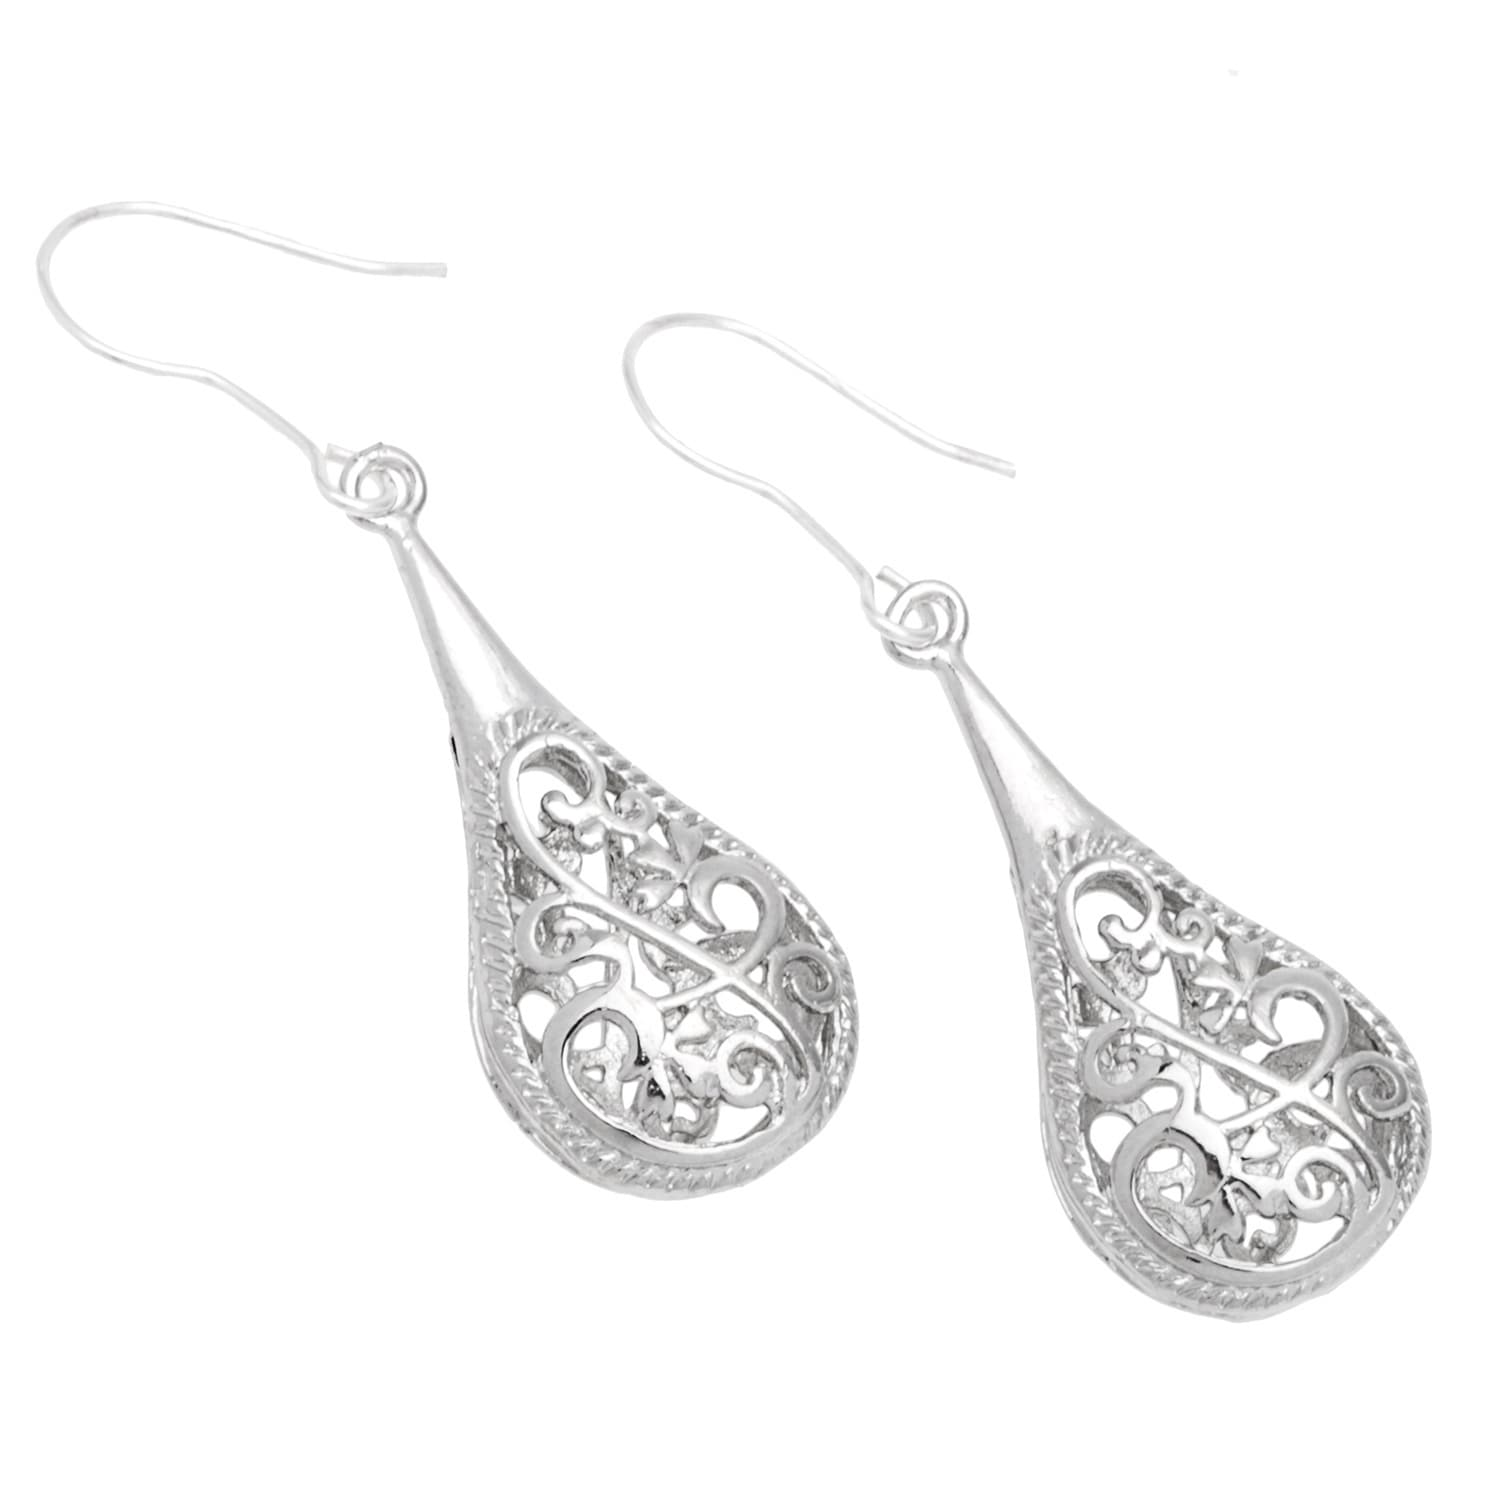 Handmade 1 Inch Silver Filigree Raindrop Earrings China On Free Shipping Orders Over 45 4798411